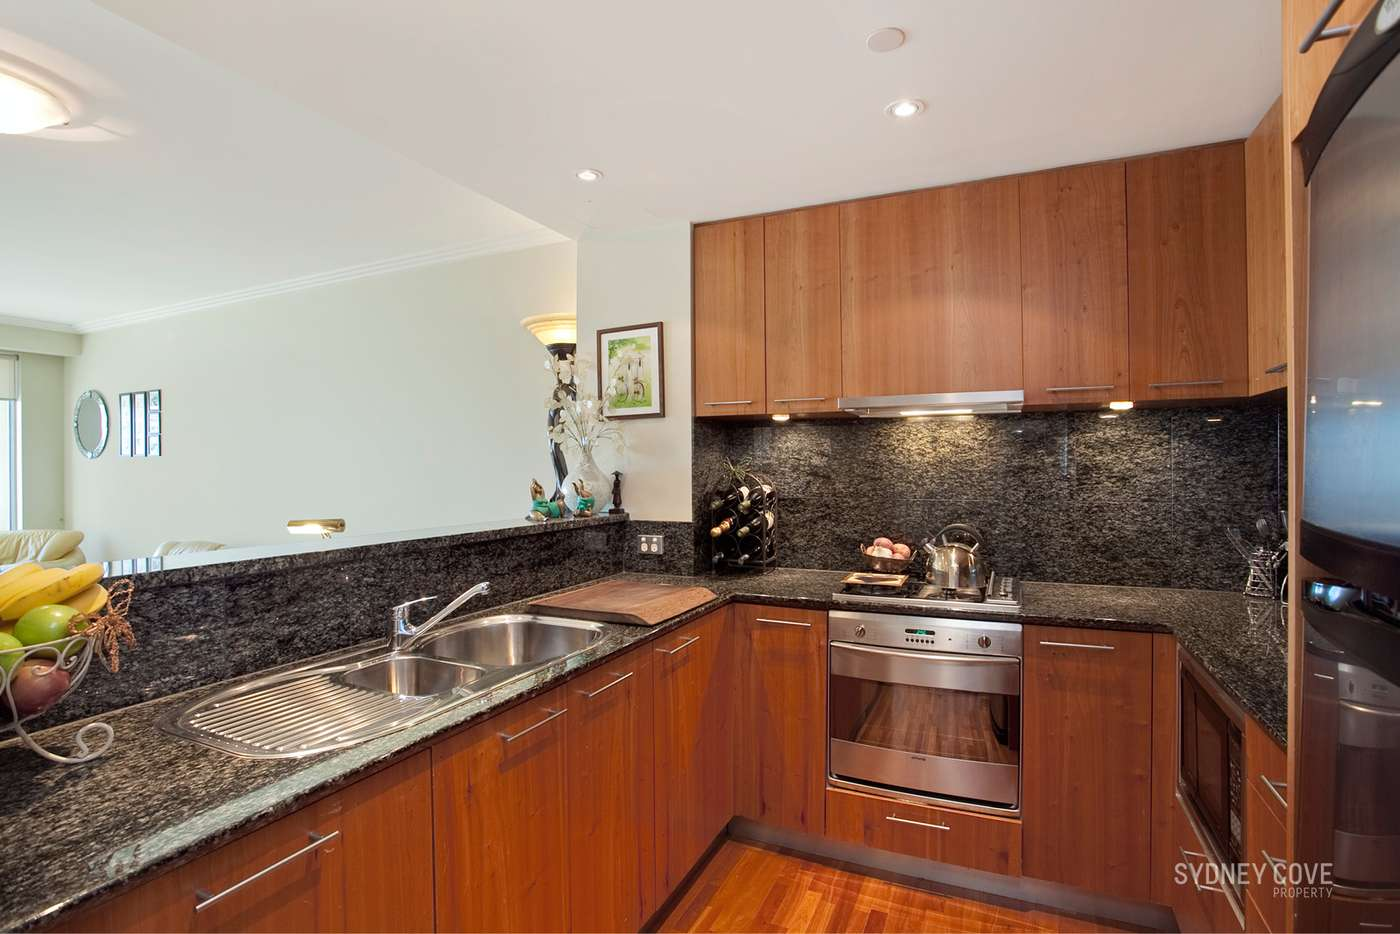 Main view of Homely apartment listing, 68-70 Market St, Sydney NSW 2000